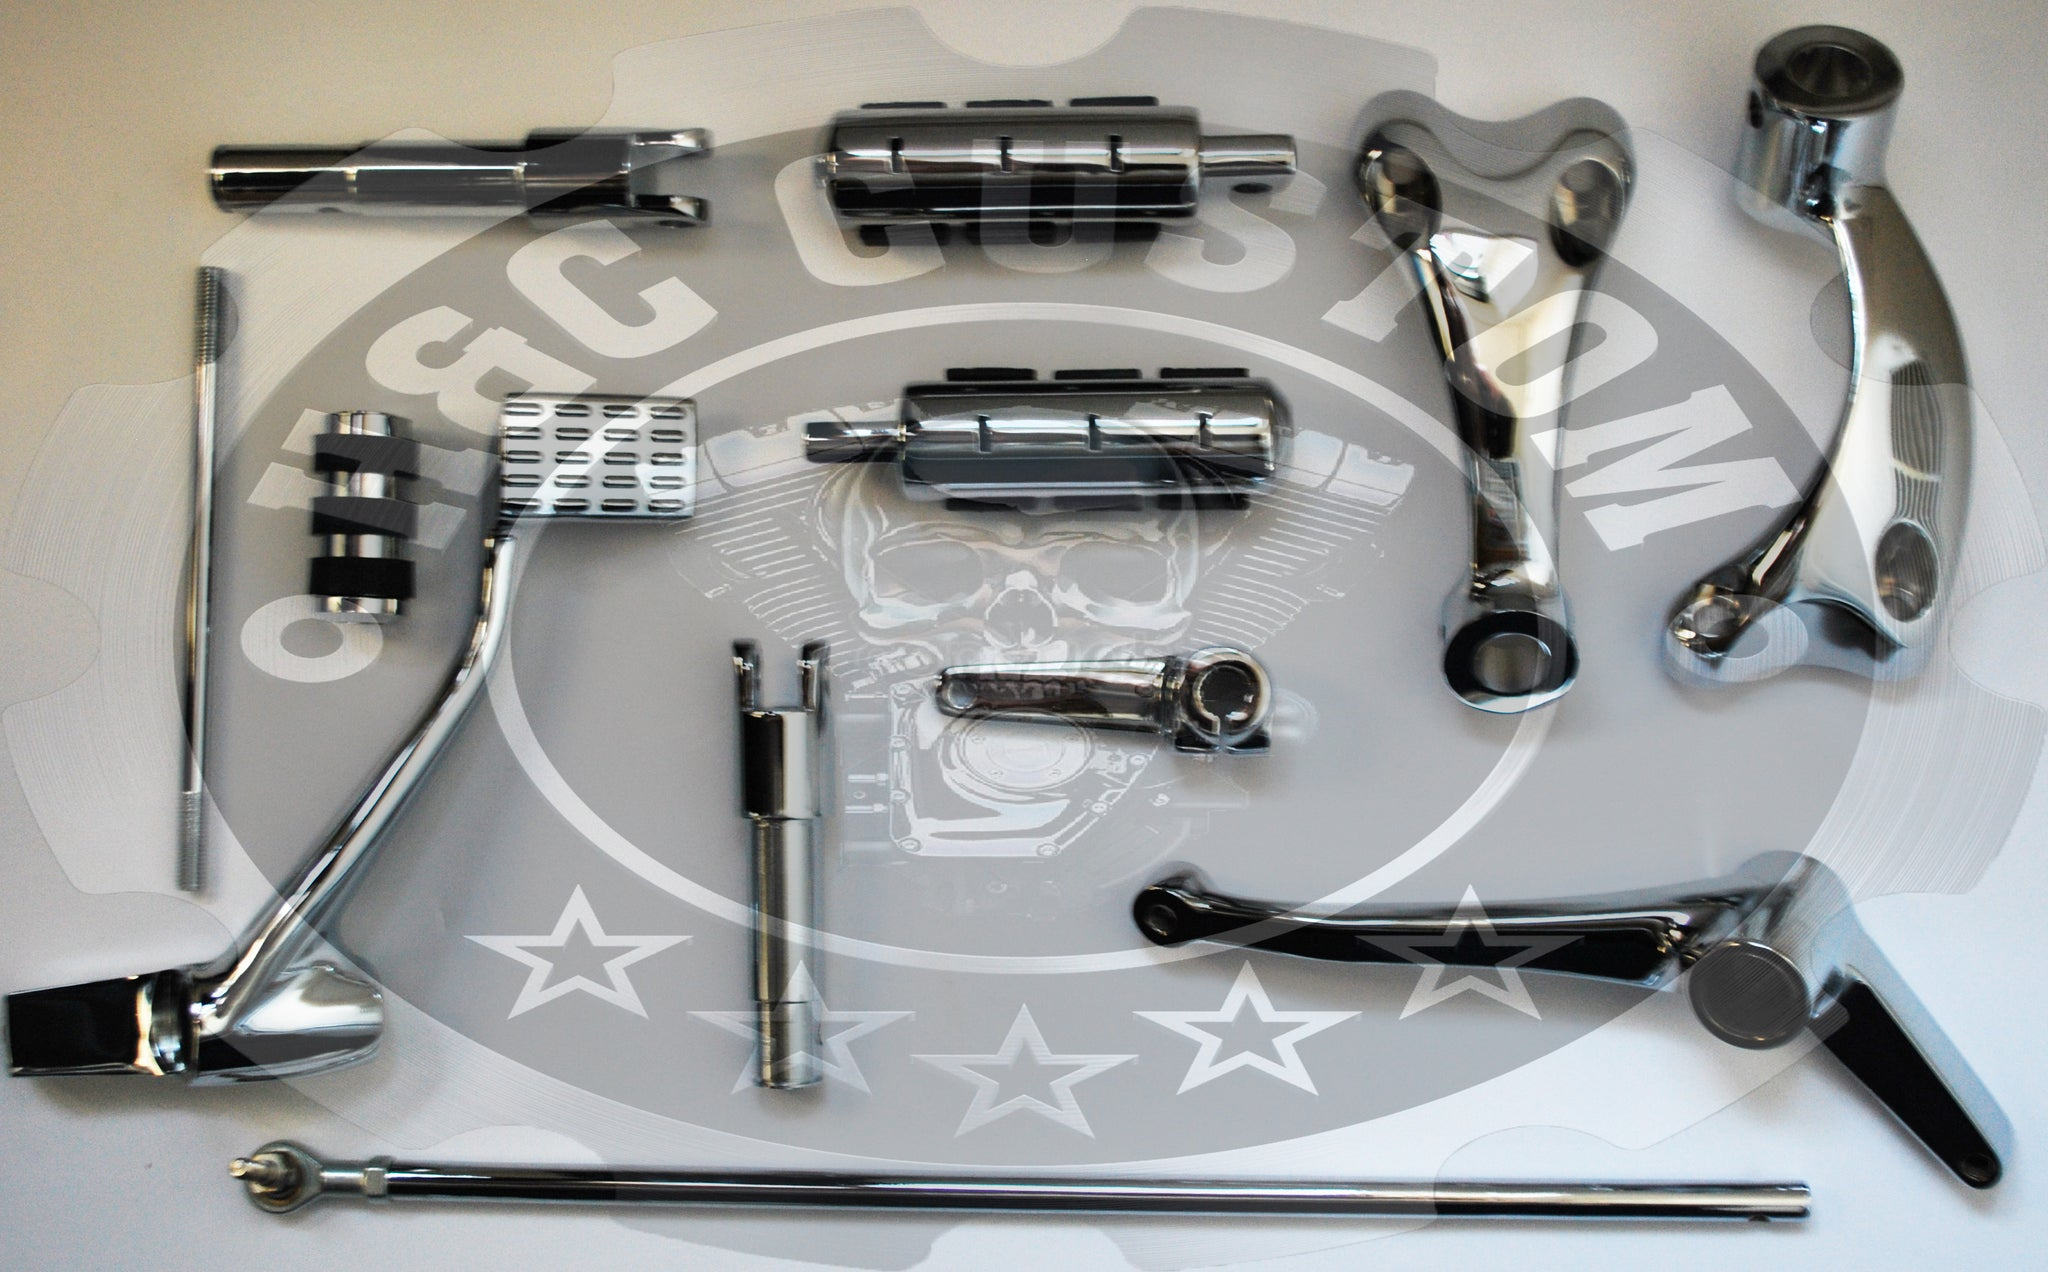 2014-2020 Sportster Forward Controls For Harley Davidson XL CHROME